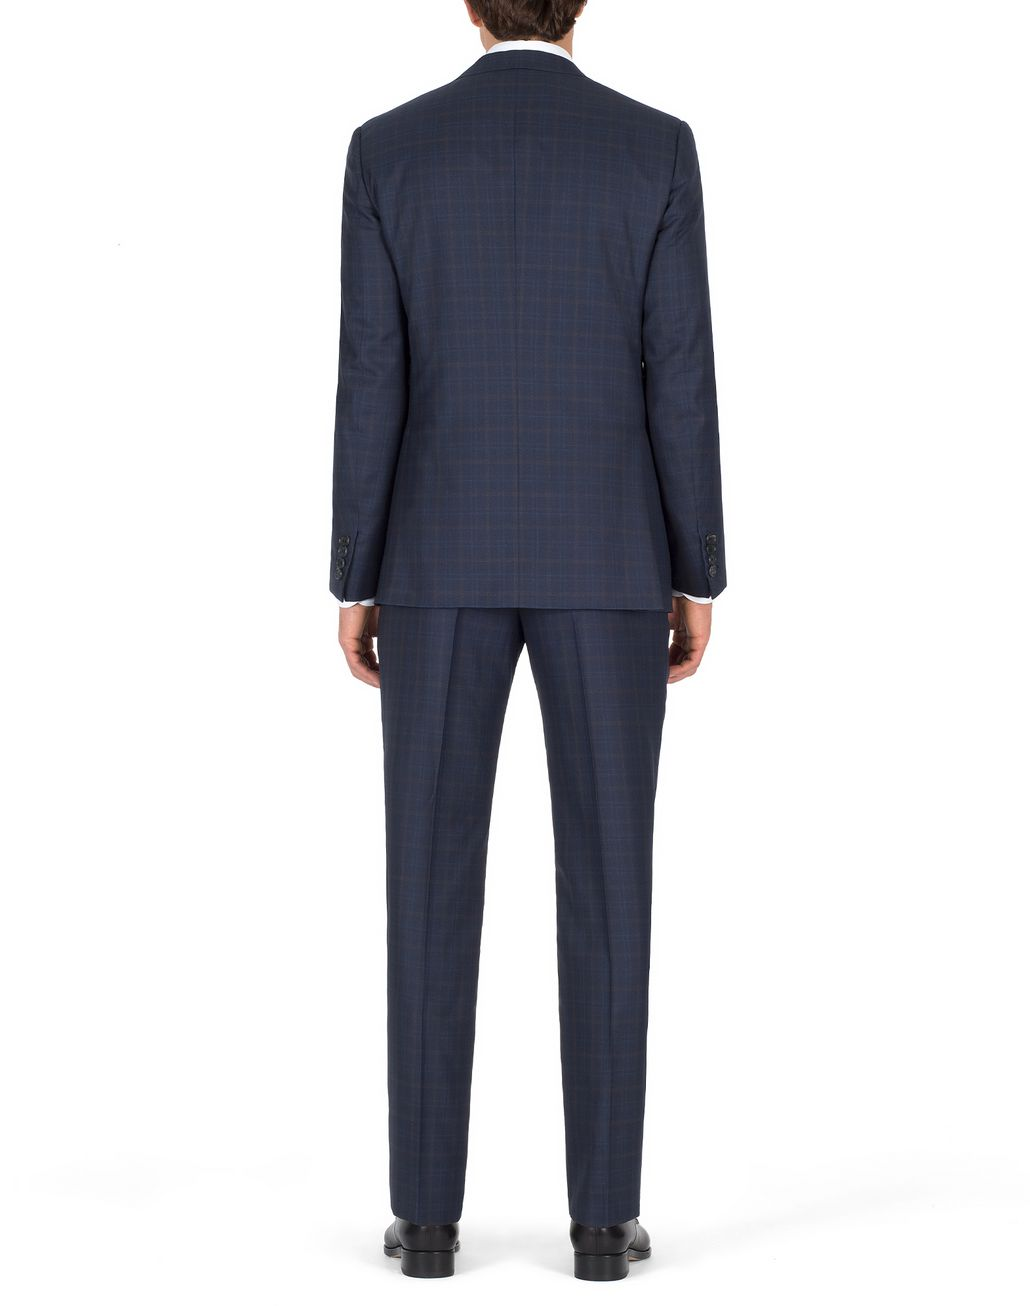 BRIONI Abito Brunico Blu Navy con Motivo a Quadri Suits & Jackets [*** pickupInStoreShippingNotGuaranteed_info ***] d